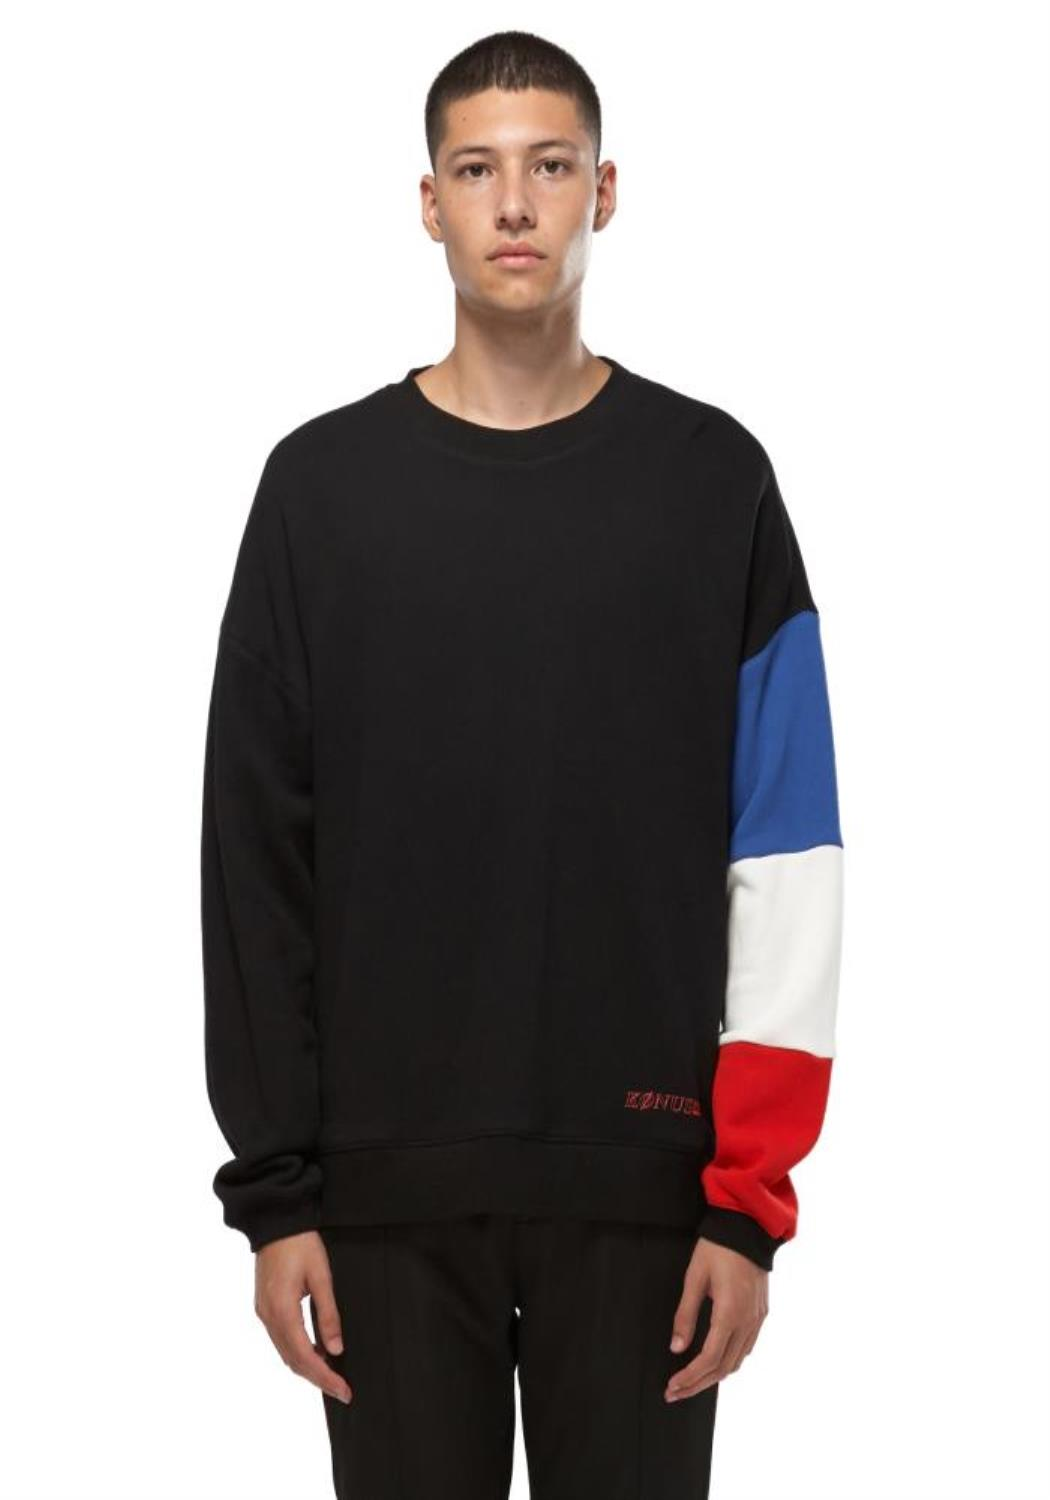 KONUS LS SWEATSHIRT WITH COLOR BLOCKED SLEEVE / McQUEEN